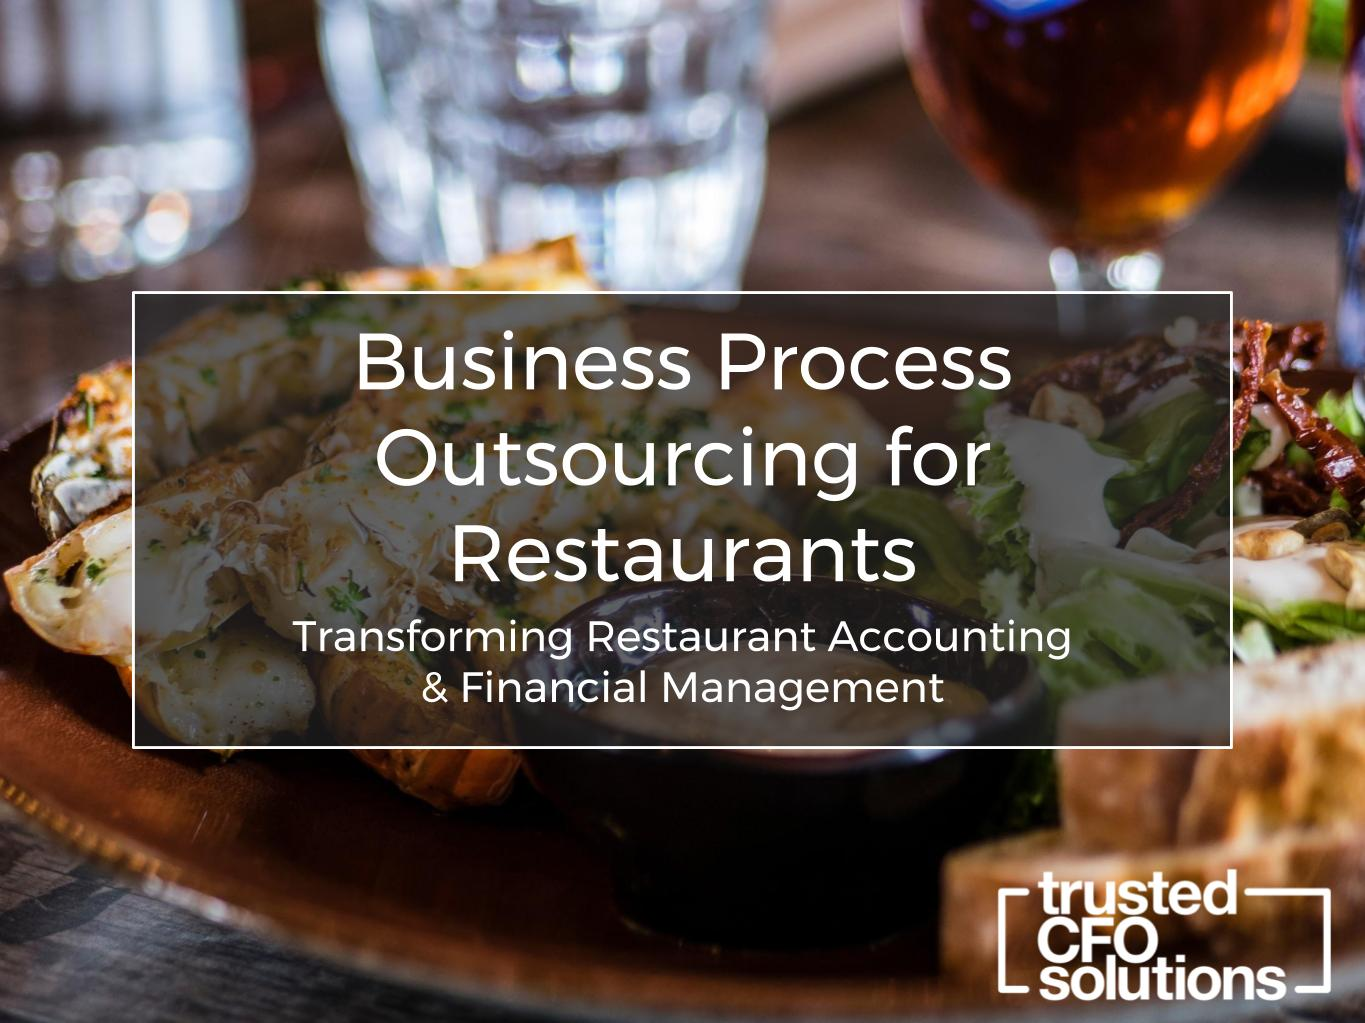 Business Process Outsourcing for Restaurants